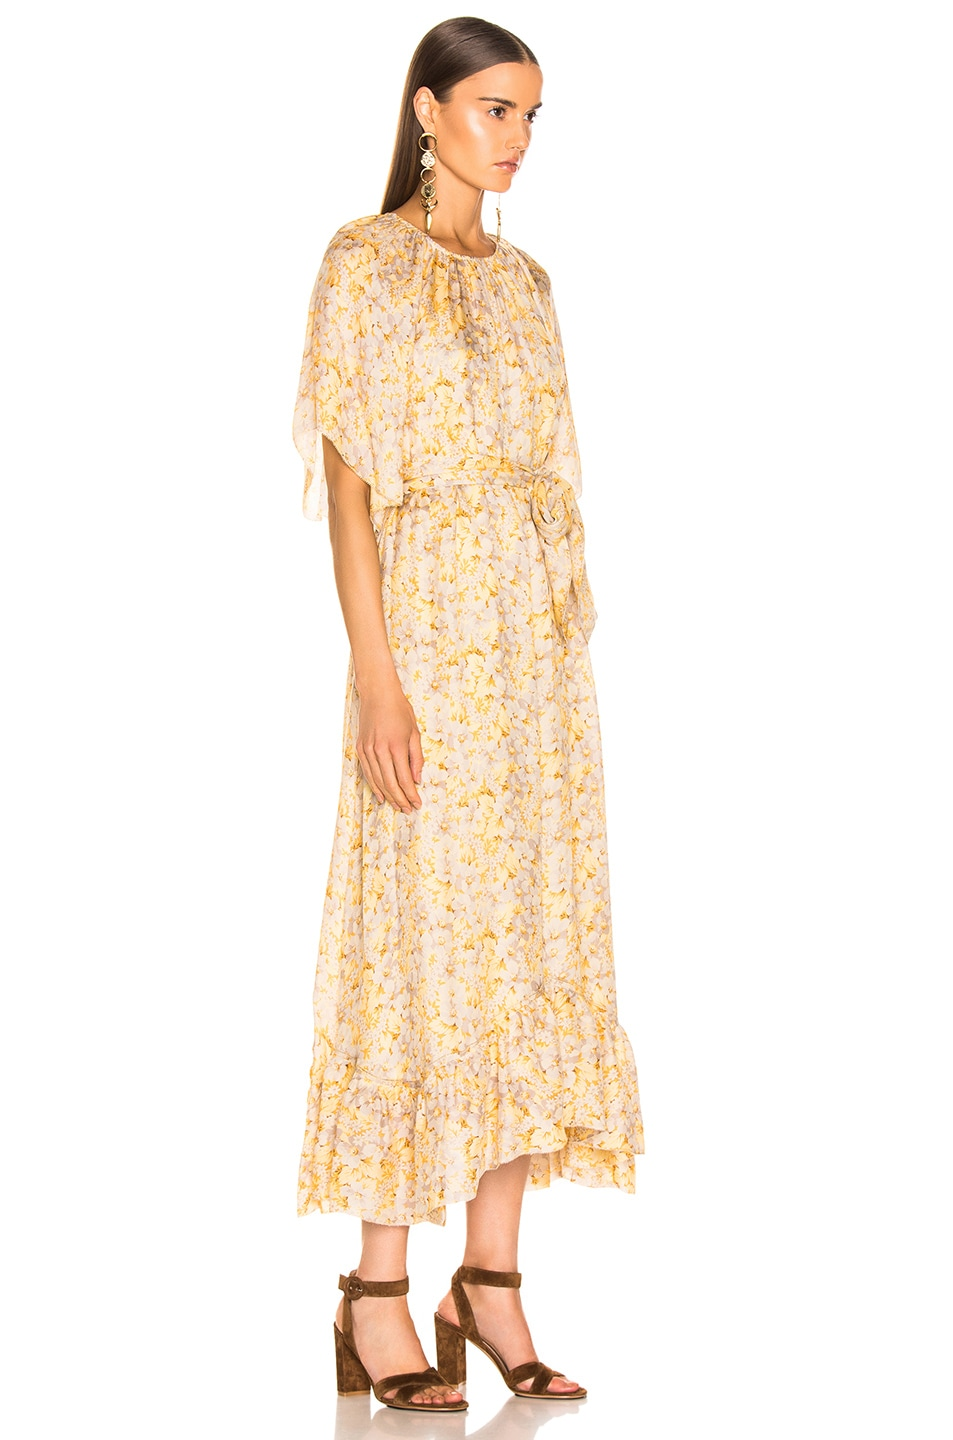 Image 2 of The Great Flutter Sleeve Dress With Belt in Buttercup Floral